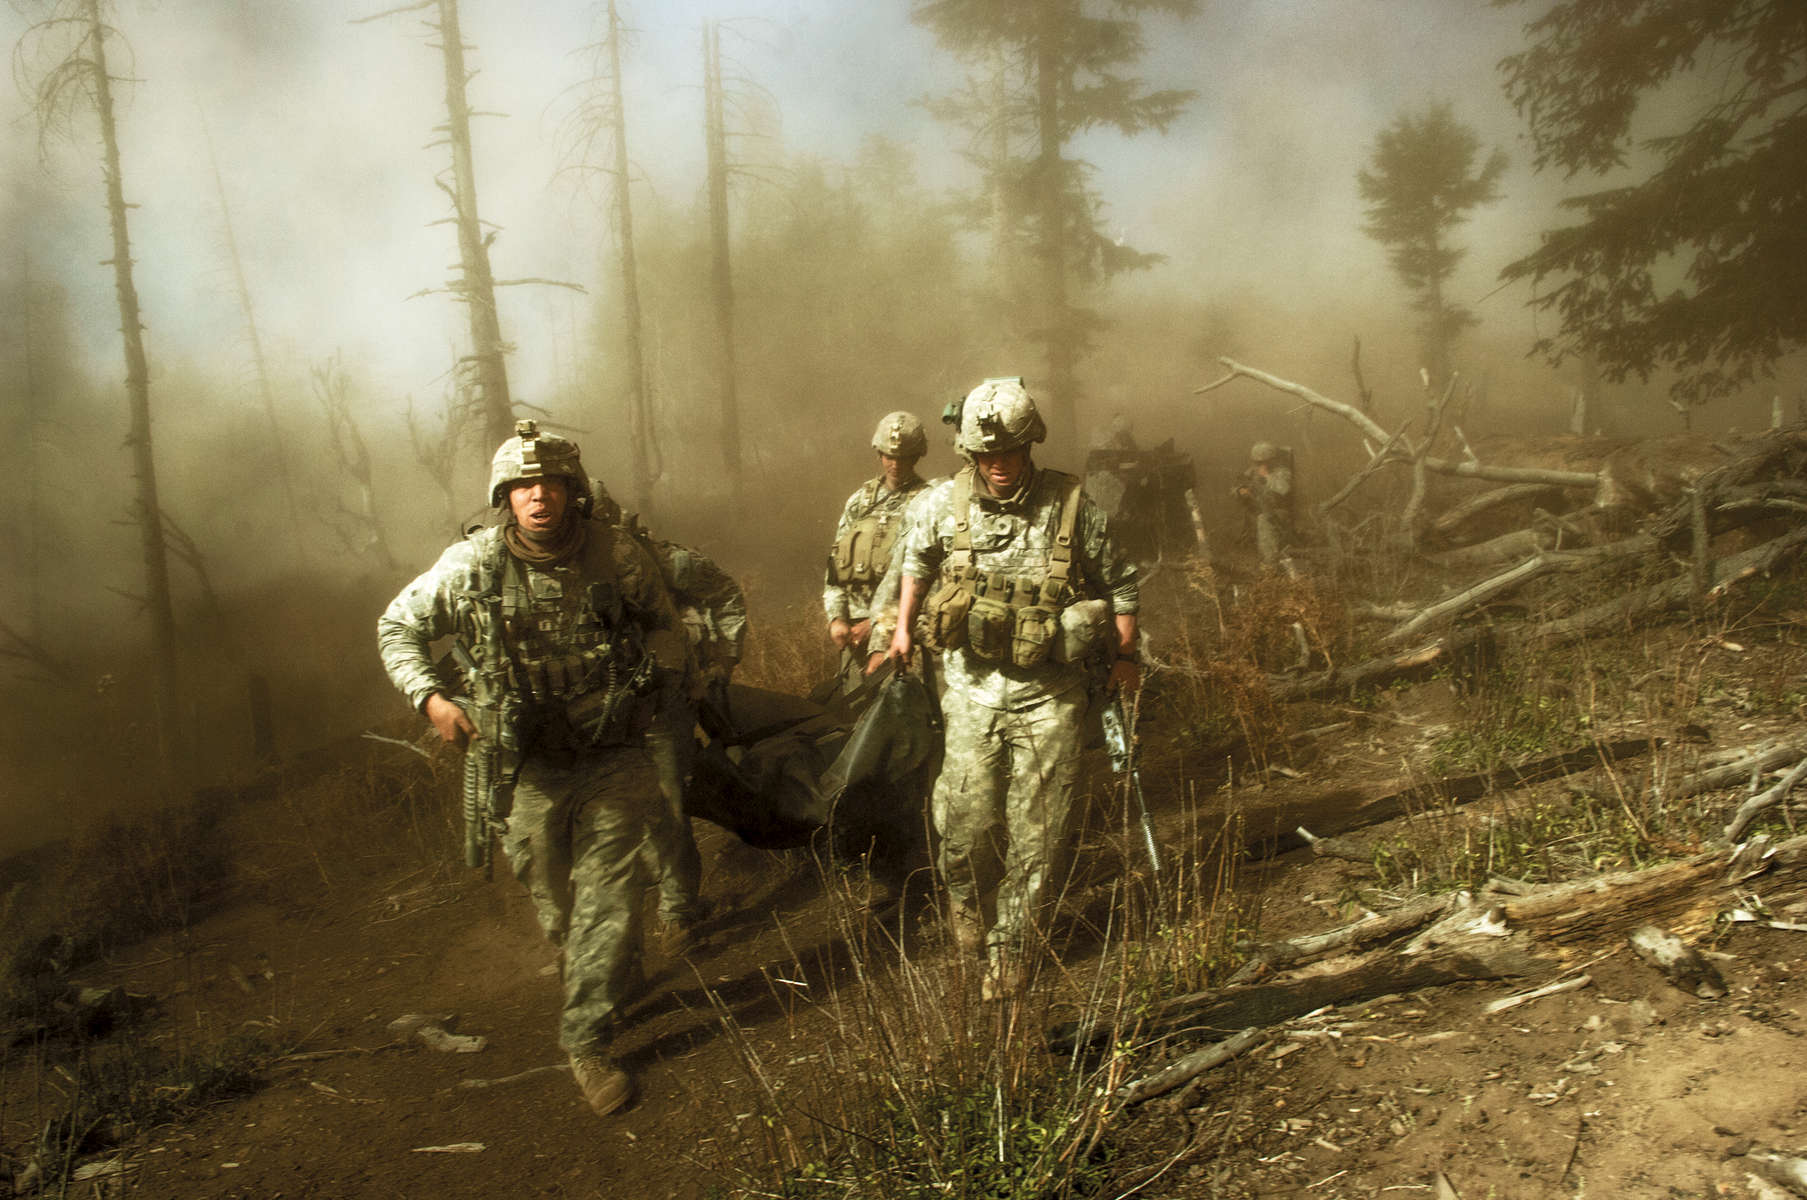 US troops carry the body of Staff Sergeant Larry Rougle, who was killed when Talibaninsurgents ambushed their squad in the Korengal Valley, Afghanistan, October 2007.